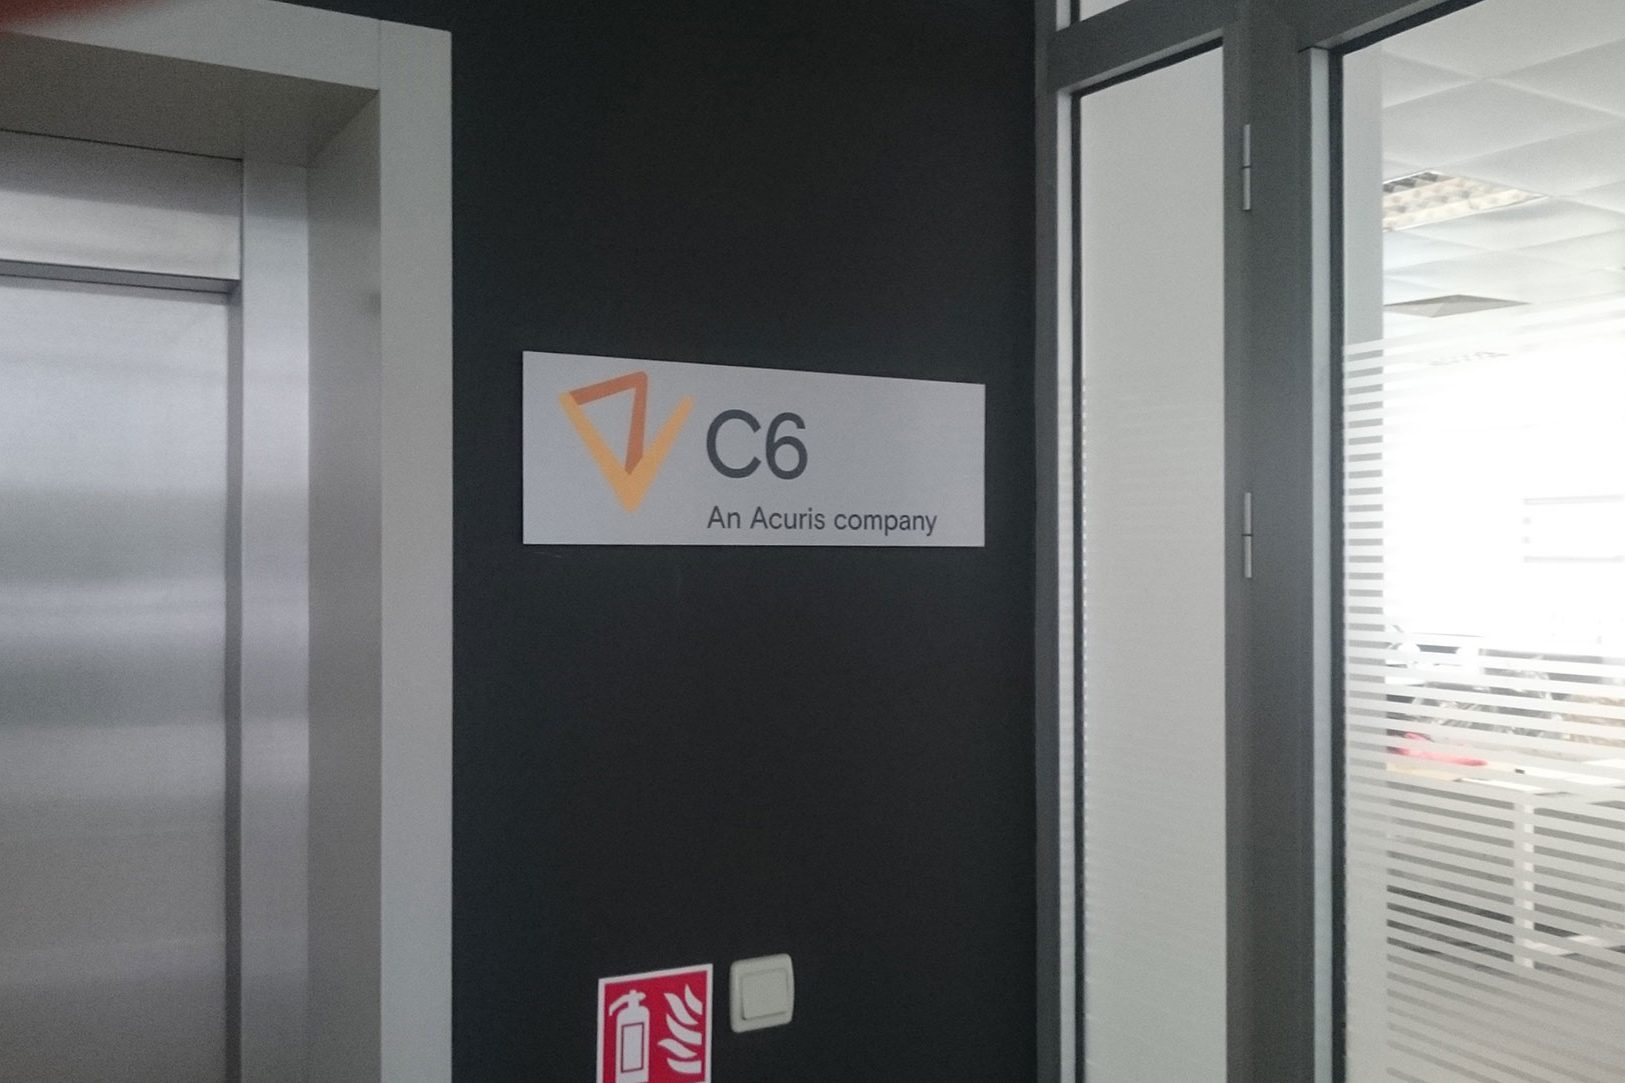 C6 sign on the wall